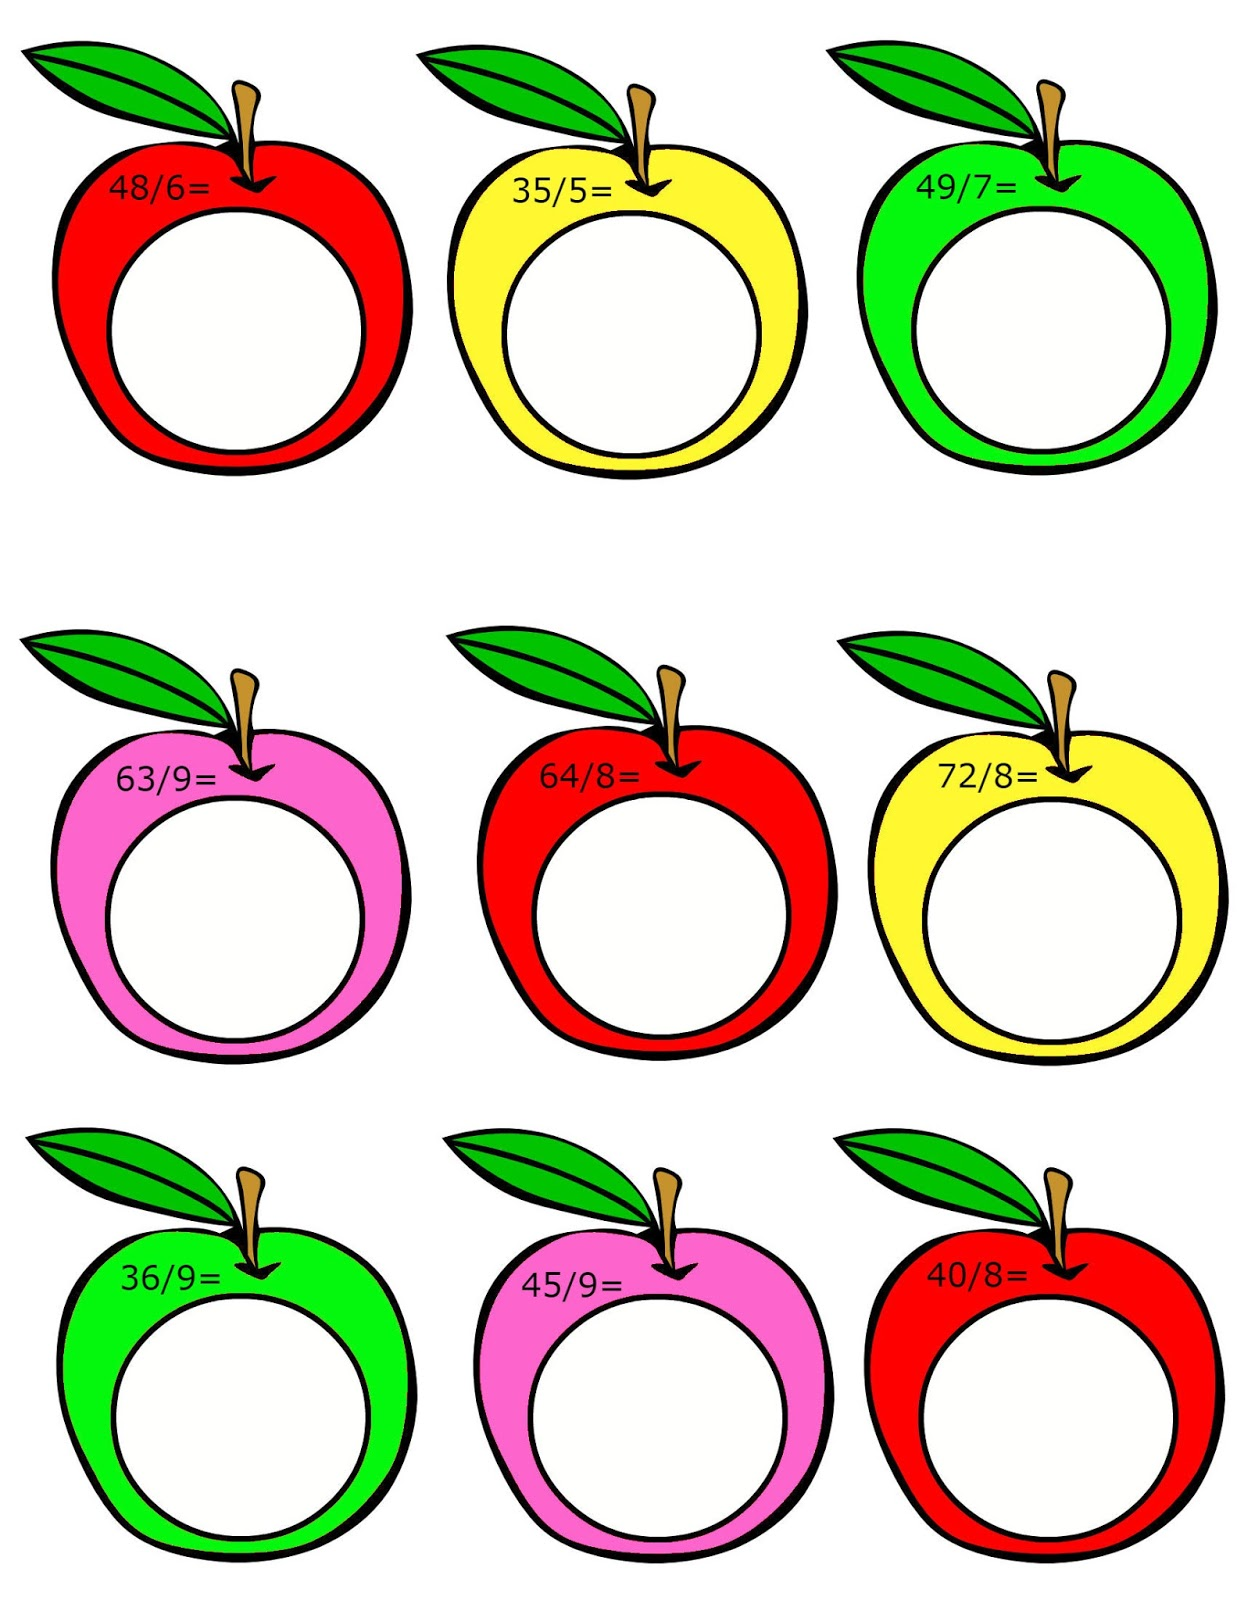 Counting Apple Seeds Free Preschool File Folder Game